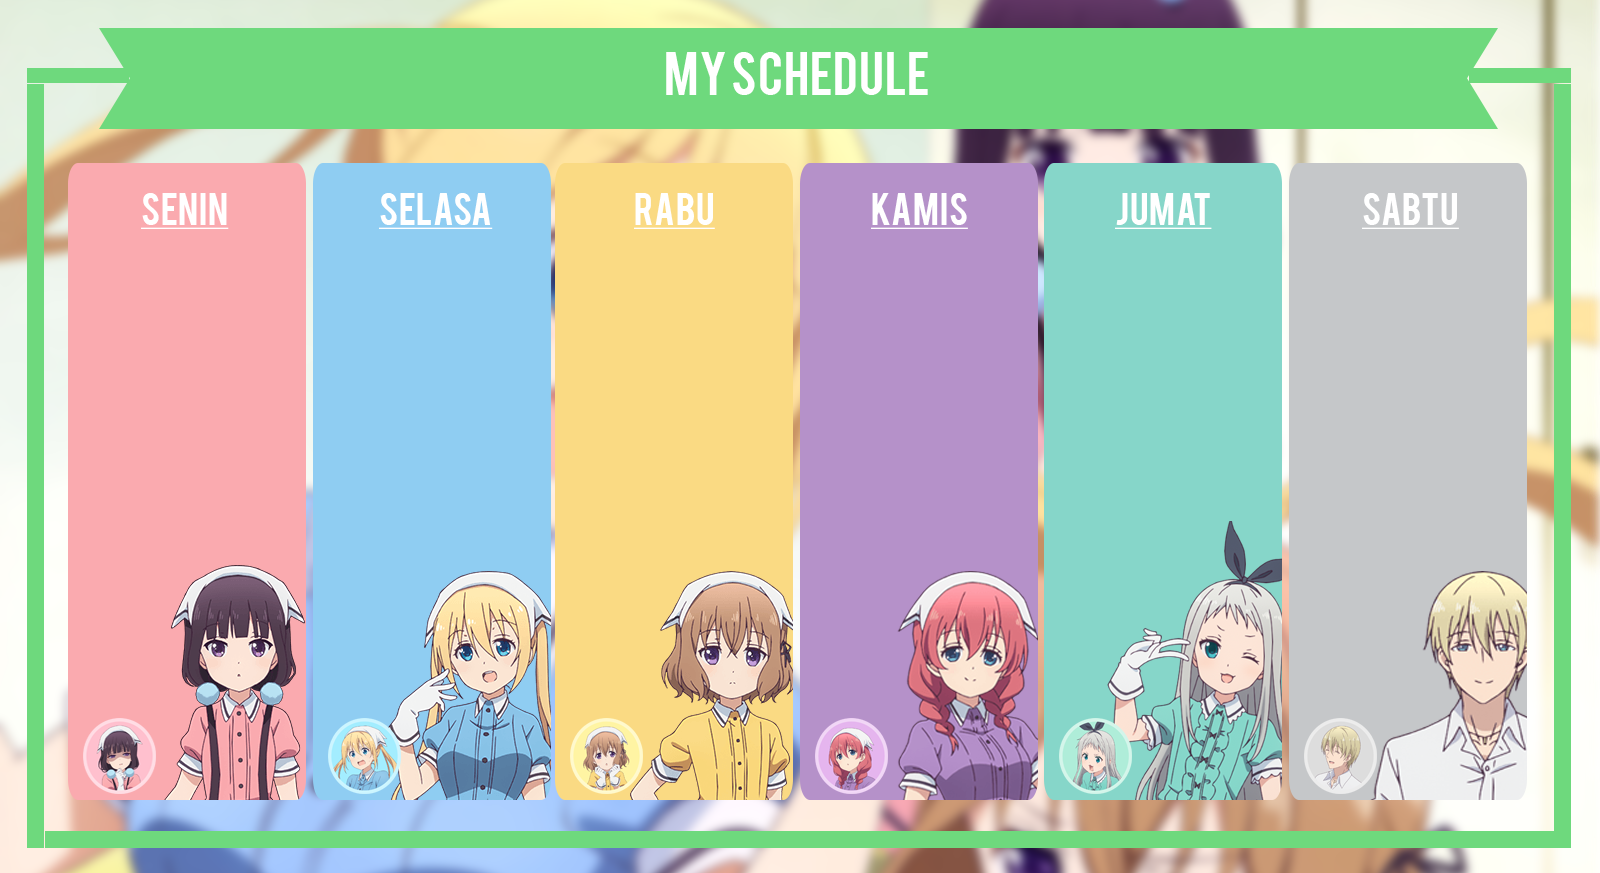 Anime schedule psd